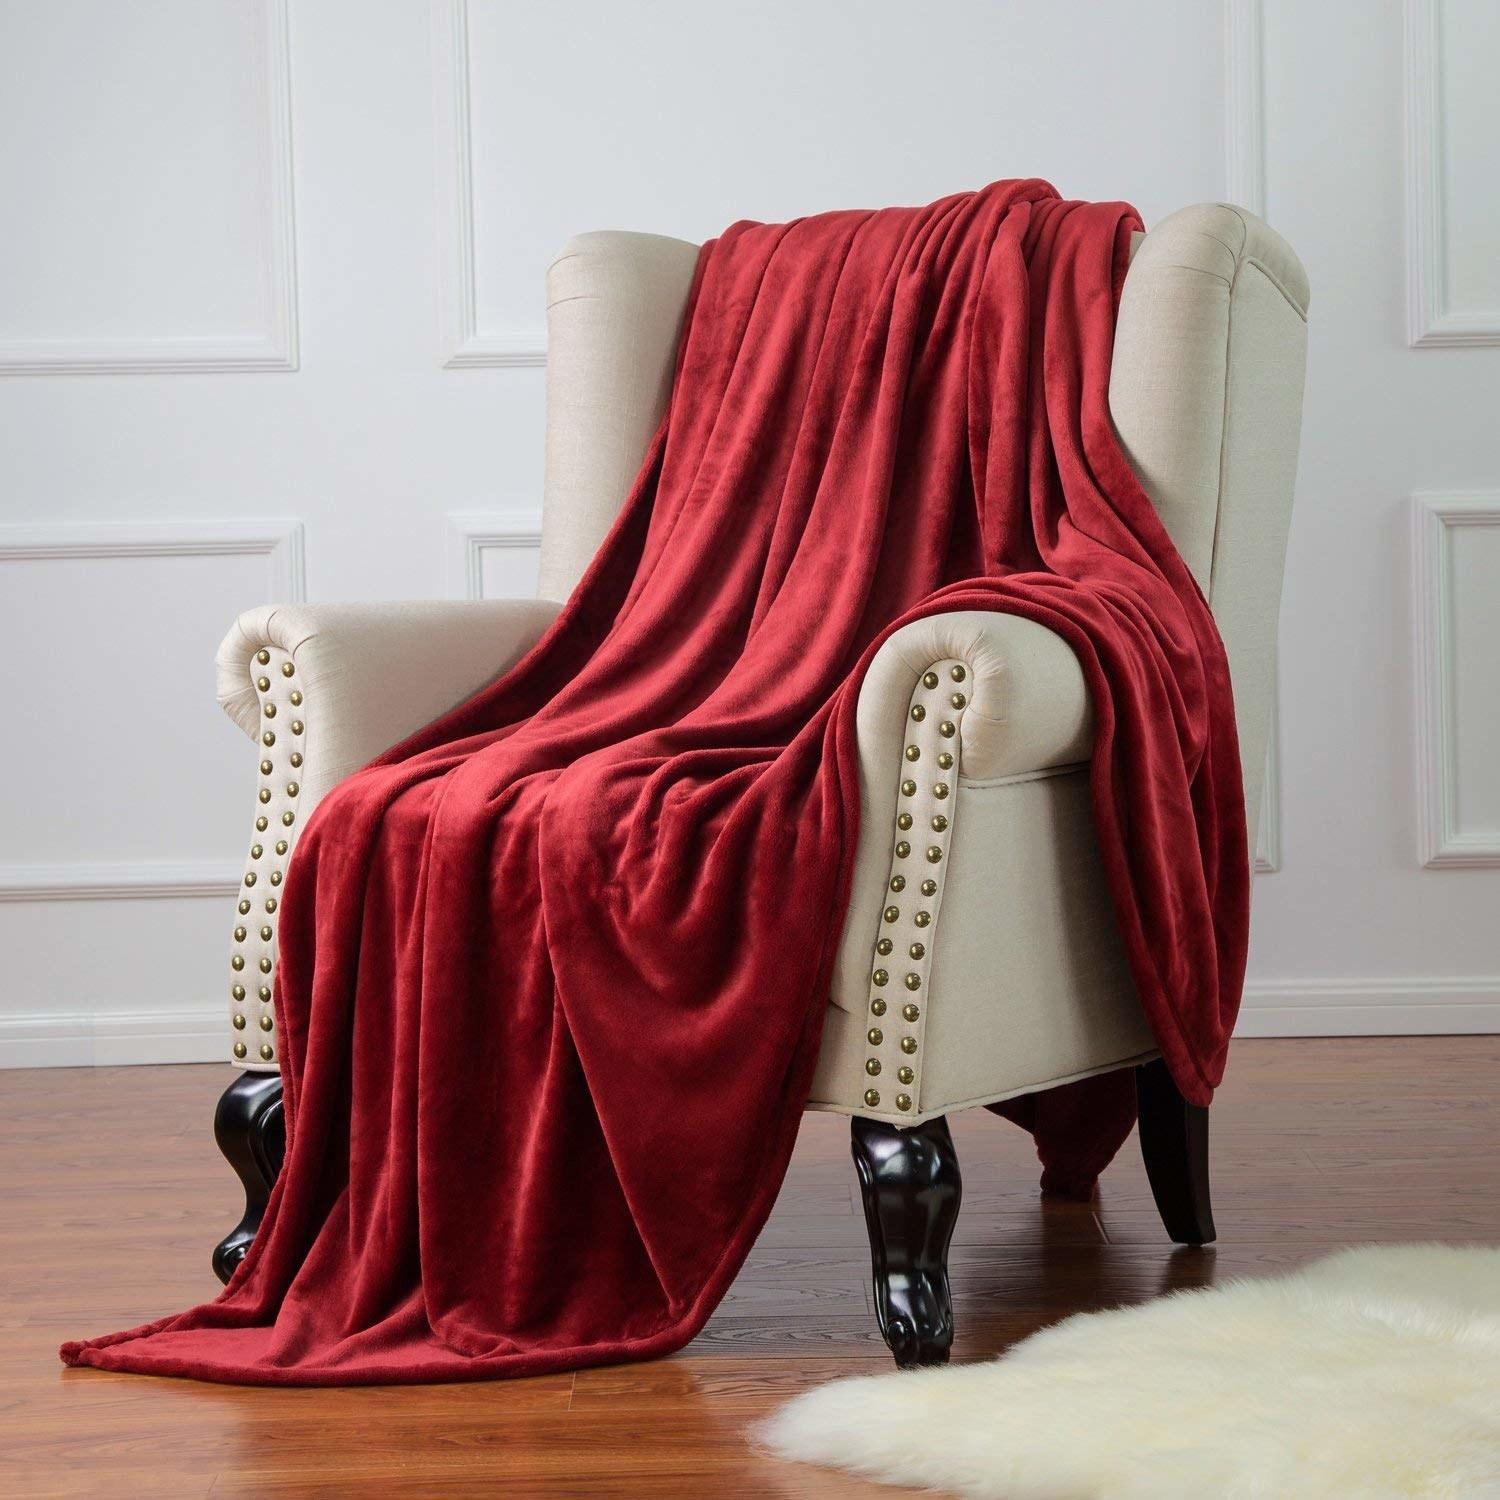 A large soft blanket draped over a chair